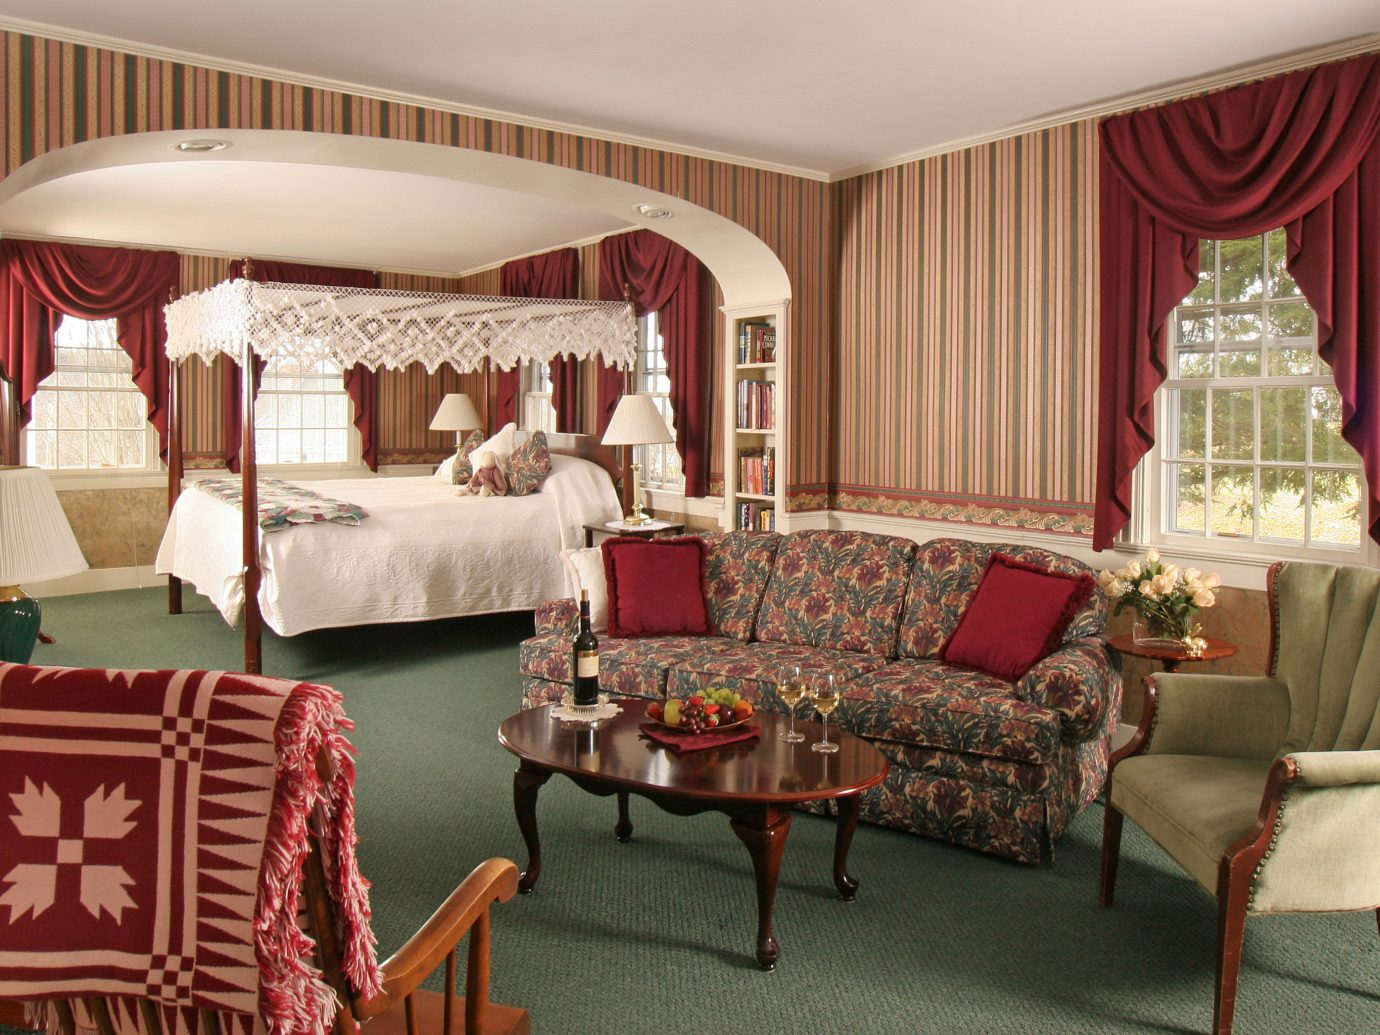 Bedroom Boutique Hotels Classic Country Hotels Inn Romantic Getaways Romantic Hotels Suite indoor floor Living room sofa wall chair living room furniture curtain interior design estate home dining room decorated